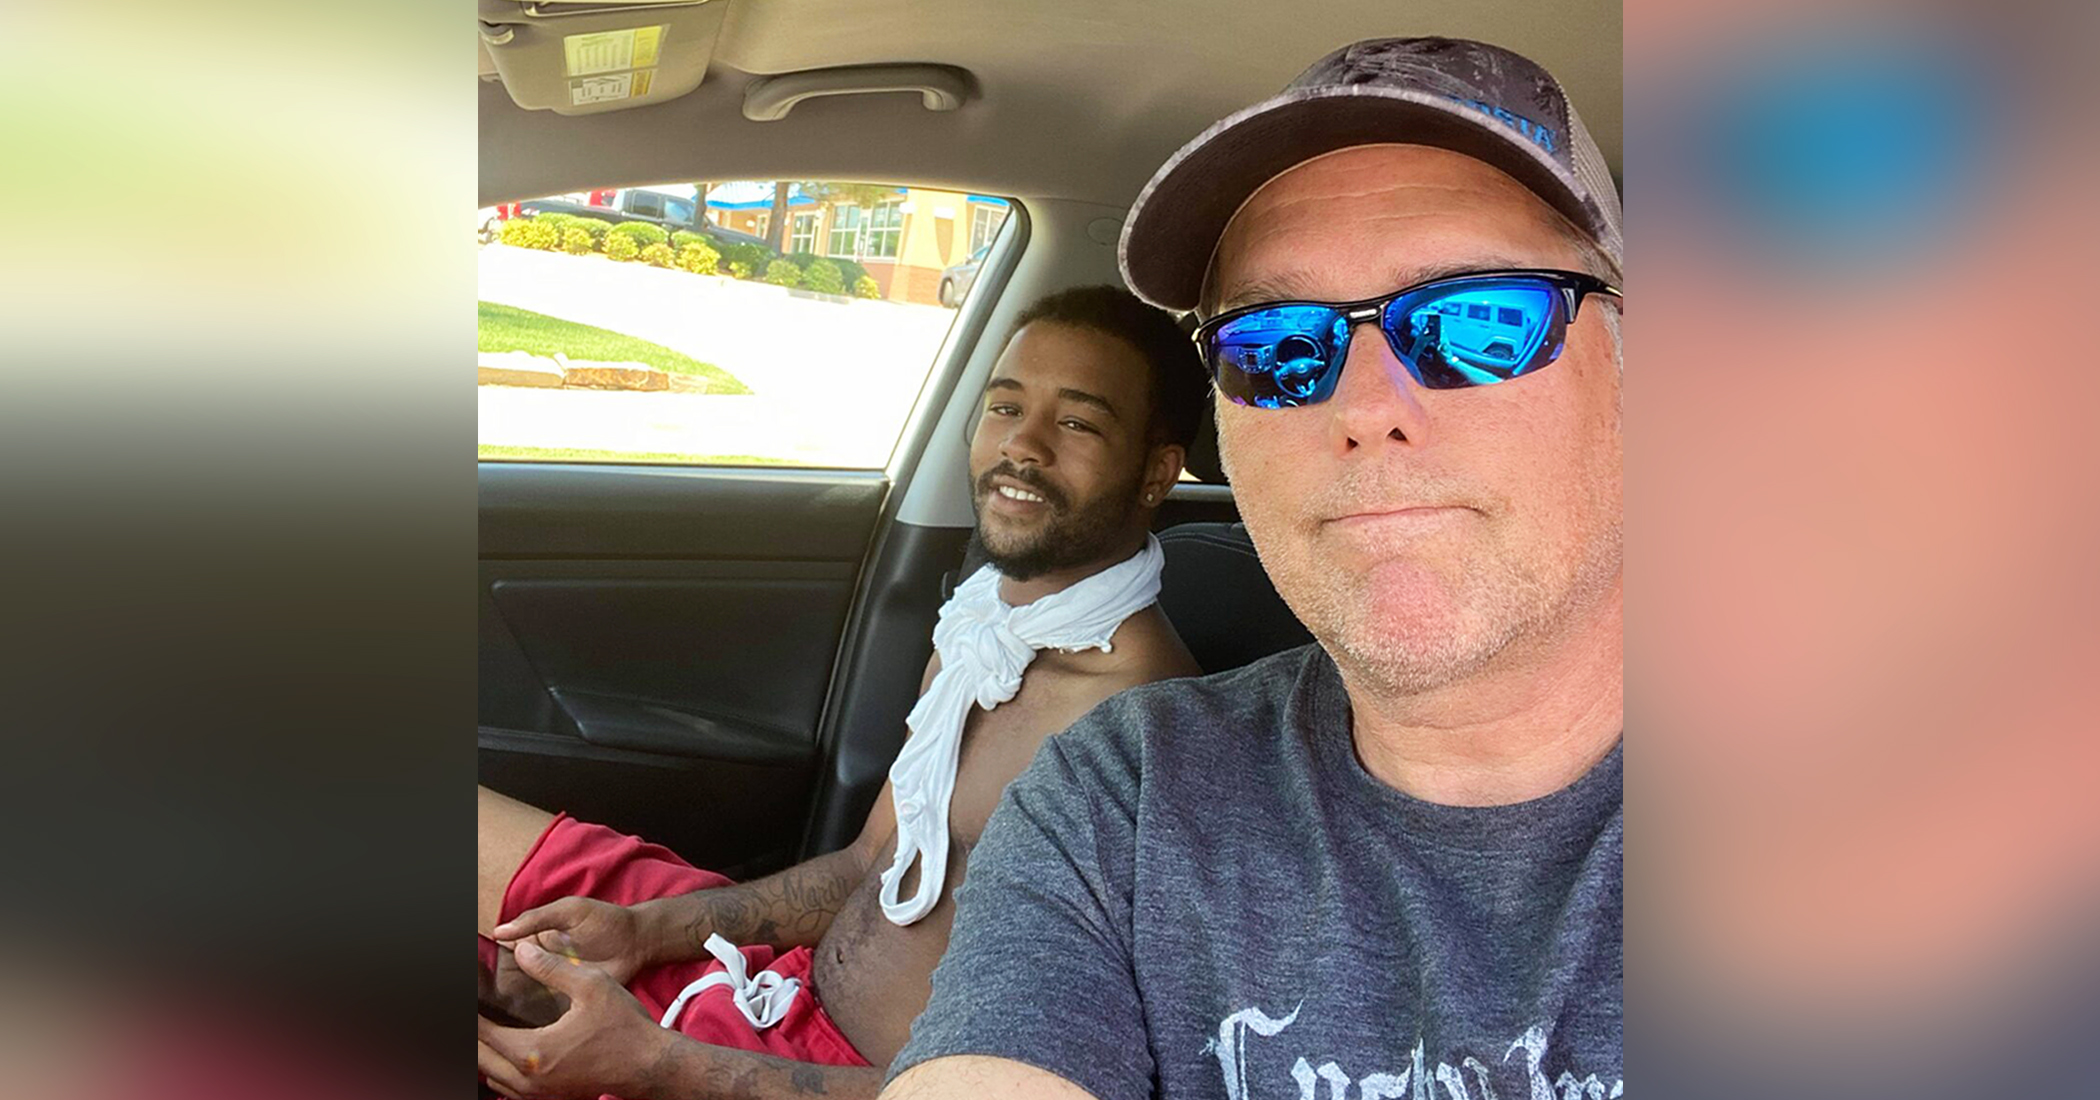 Oklahoma man walks 17 miles a day for work, stranger offers a ride and turns his life around